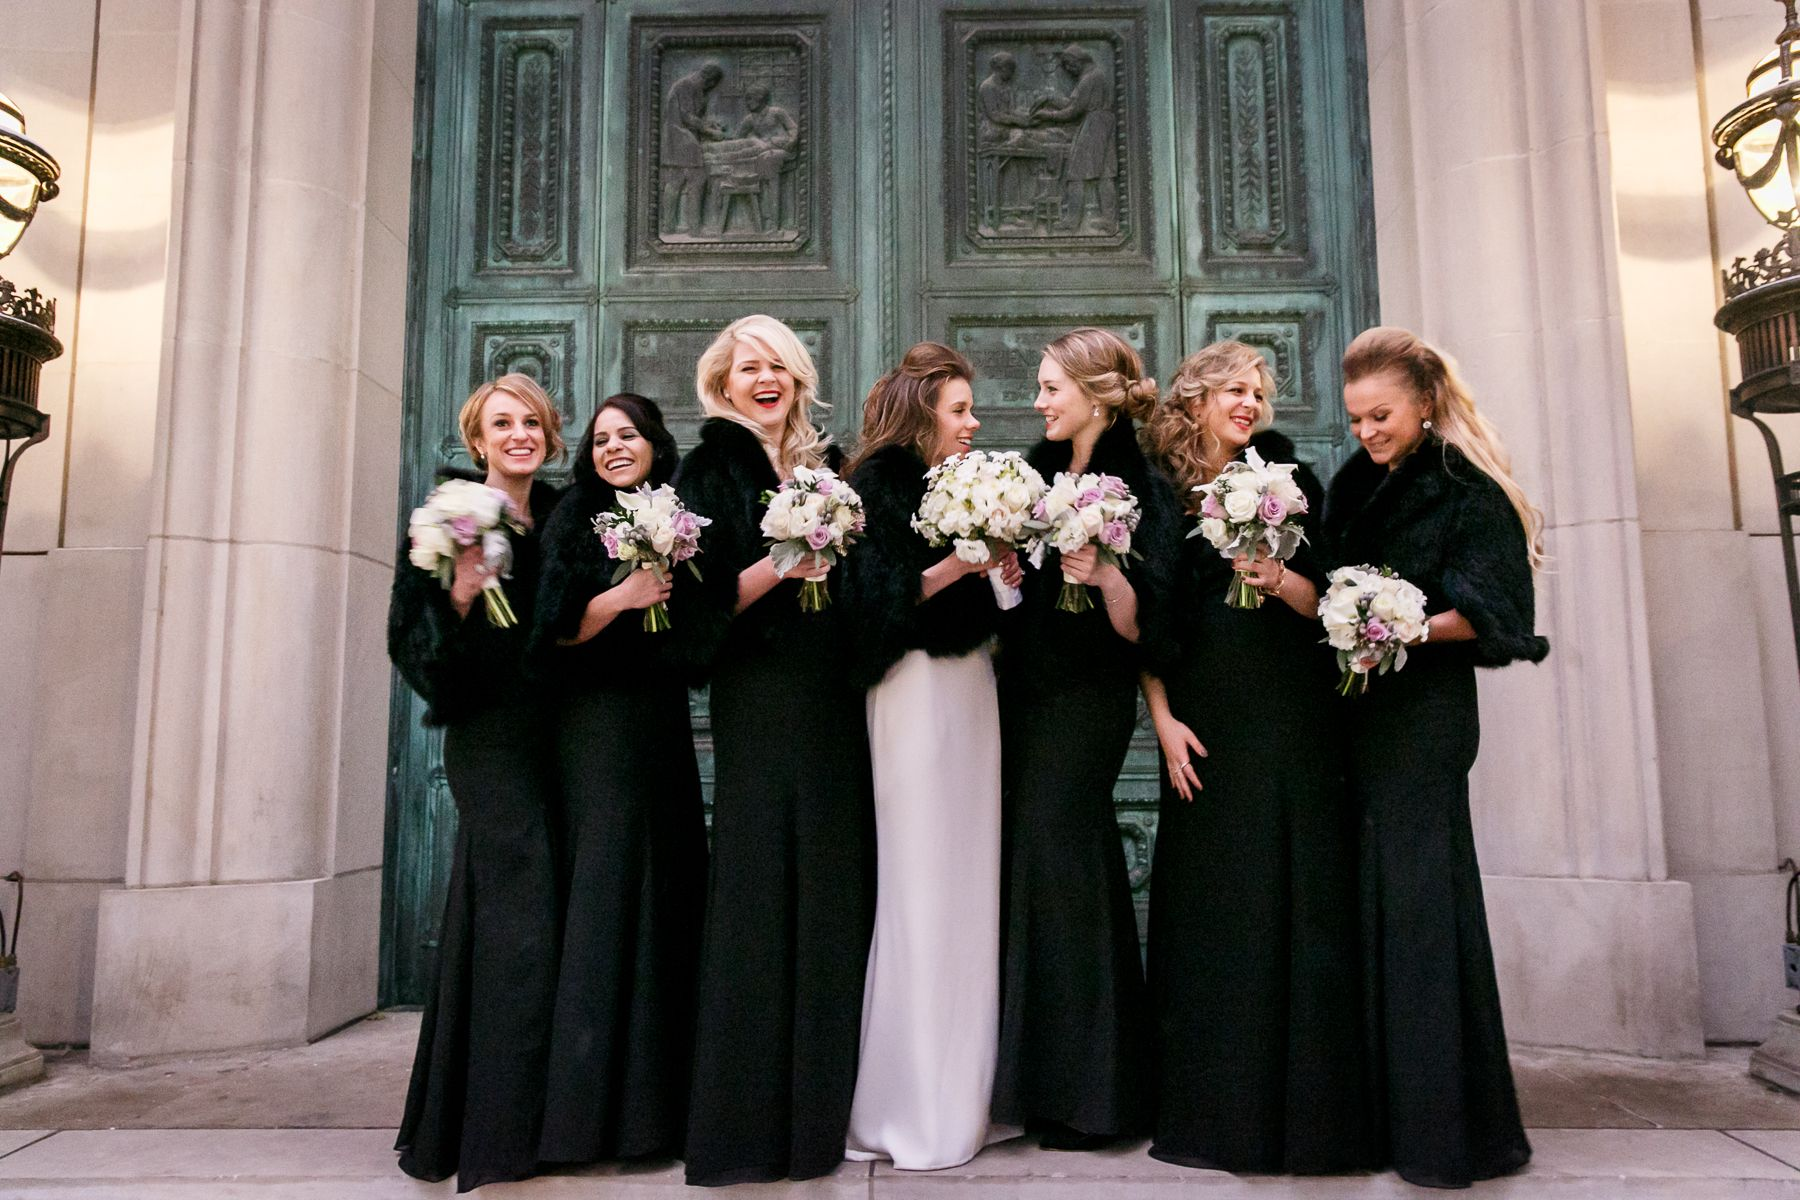 Black bridesmaid dresses with fur wraps one dayry soon black bridesmaid dresses with fur wraps ombrellifo Image collections